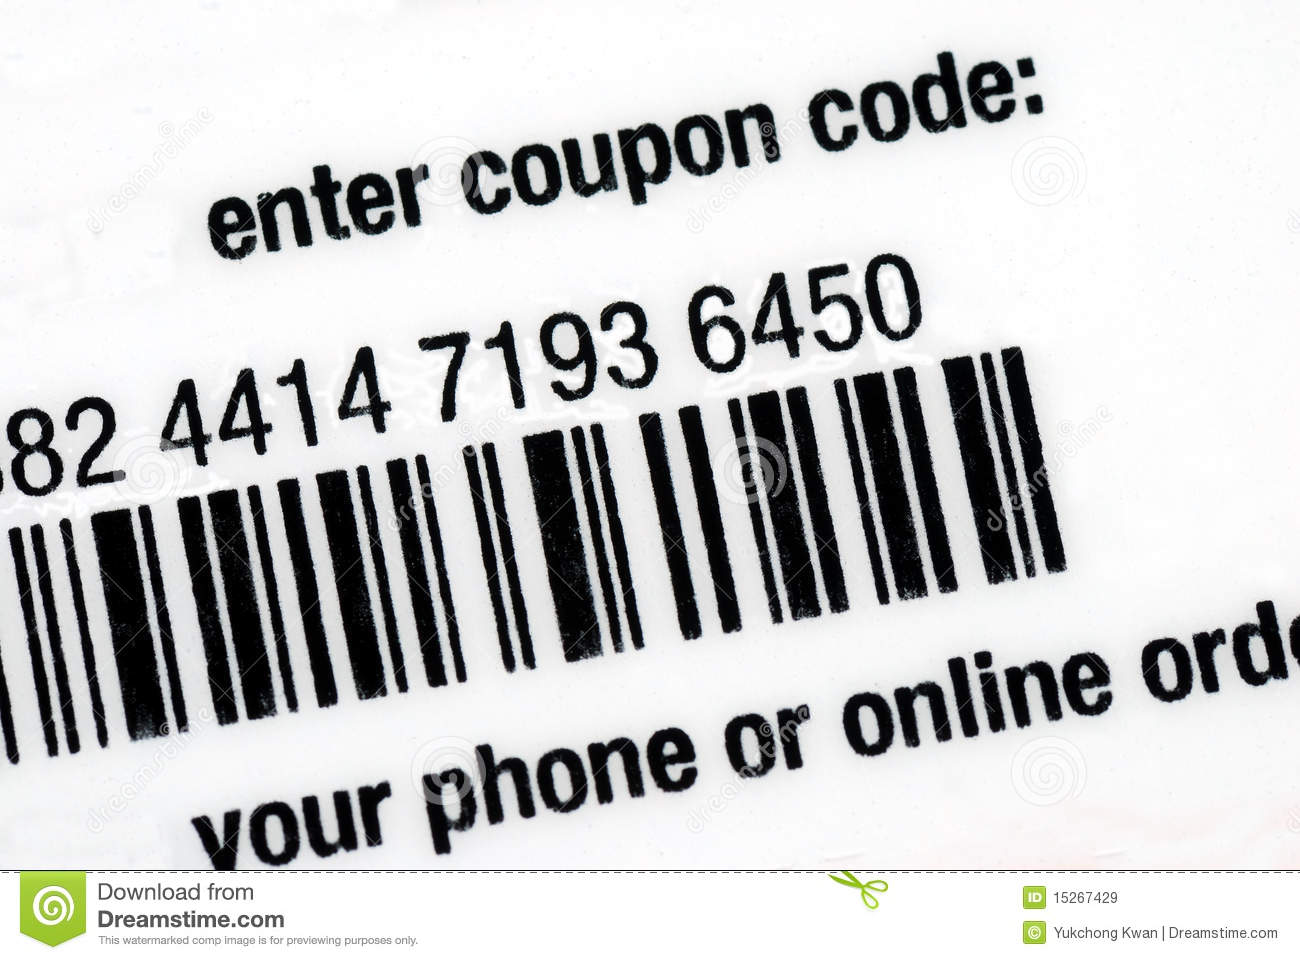 Nasa store coupon code